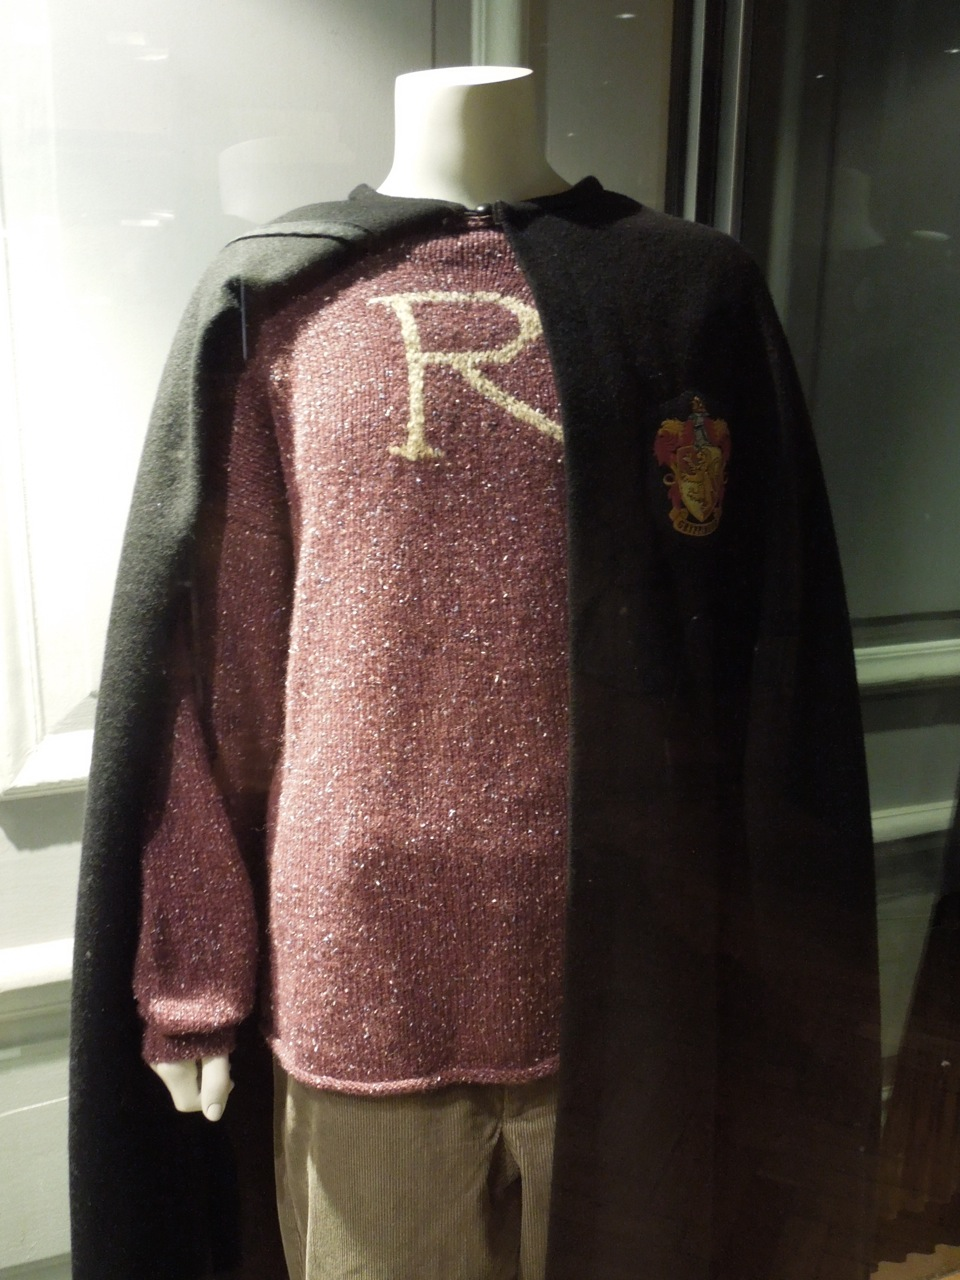 Harry Potter and Ron Weasley movie costumes on display ...